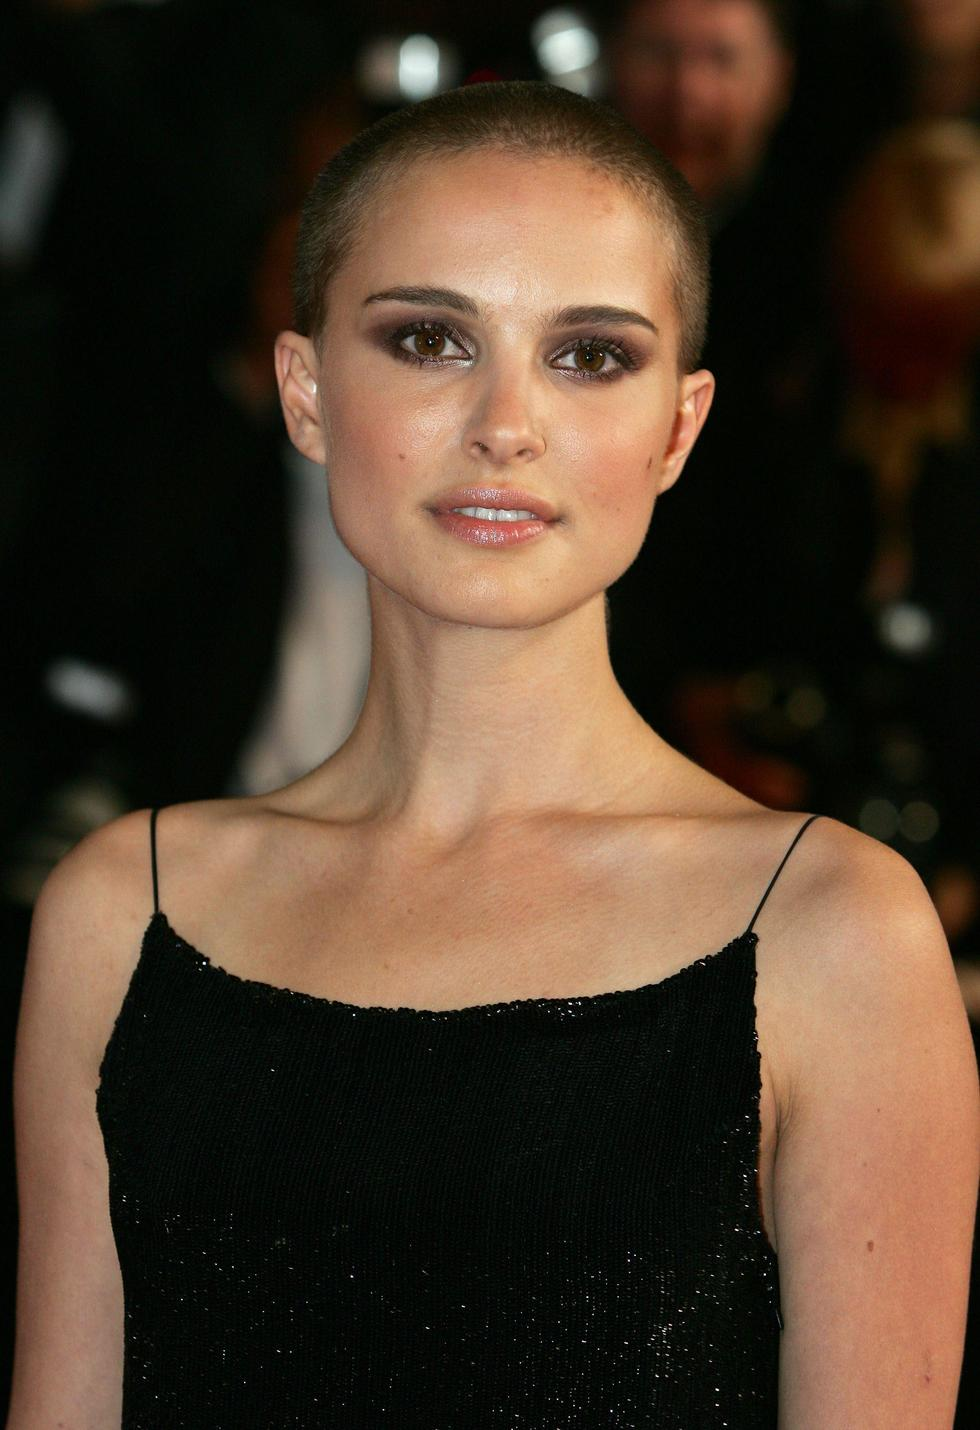 Potentially the most famous woman to have gone for a buzz cut, Natalie Portman shaved her hair off for 'V For Vendetta' in 2006